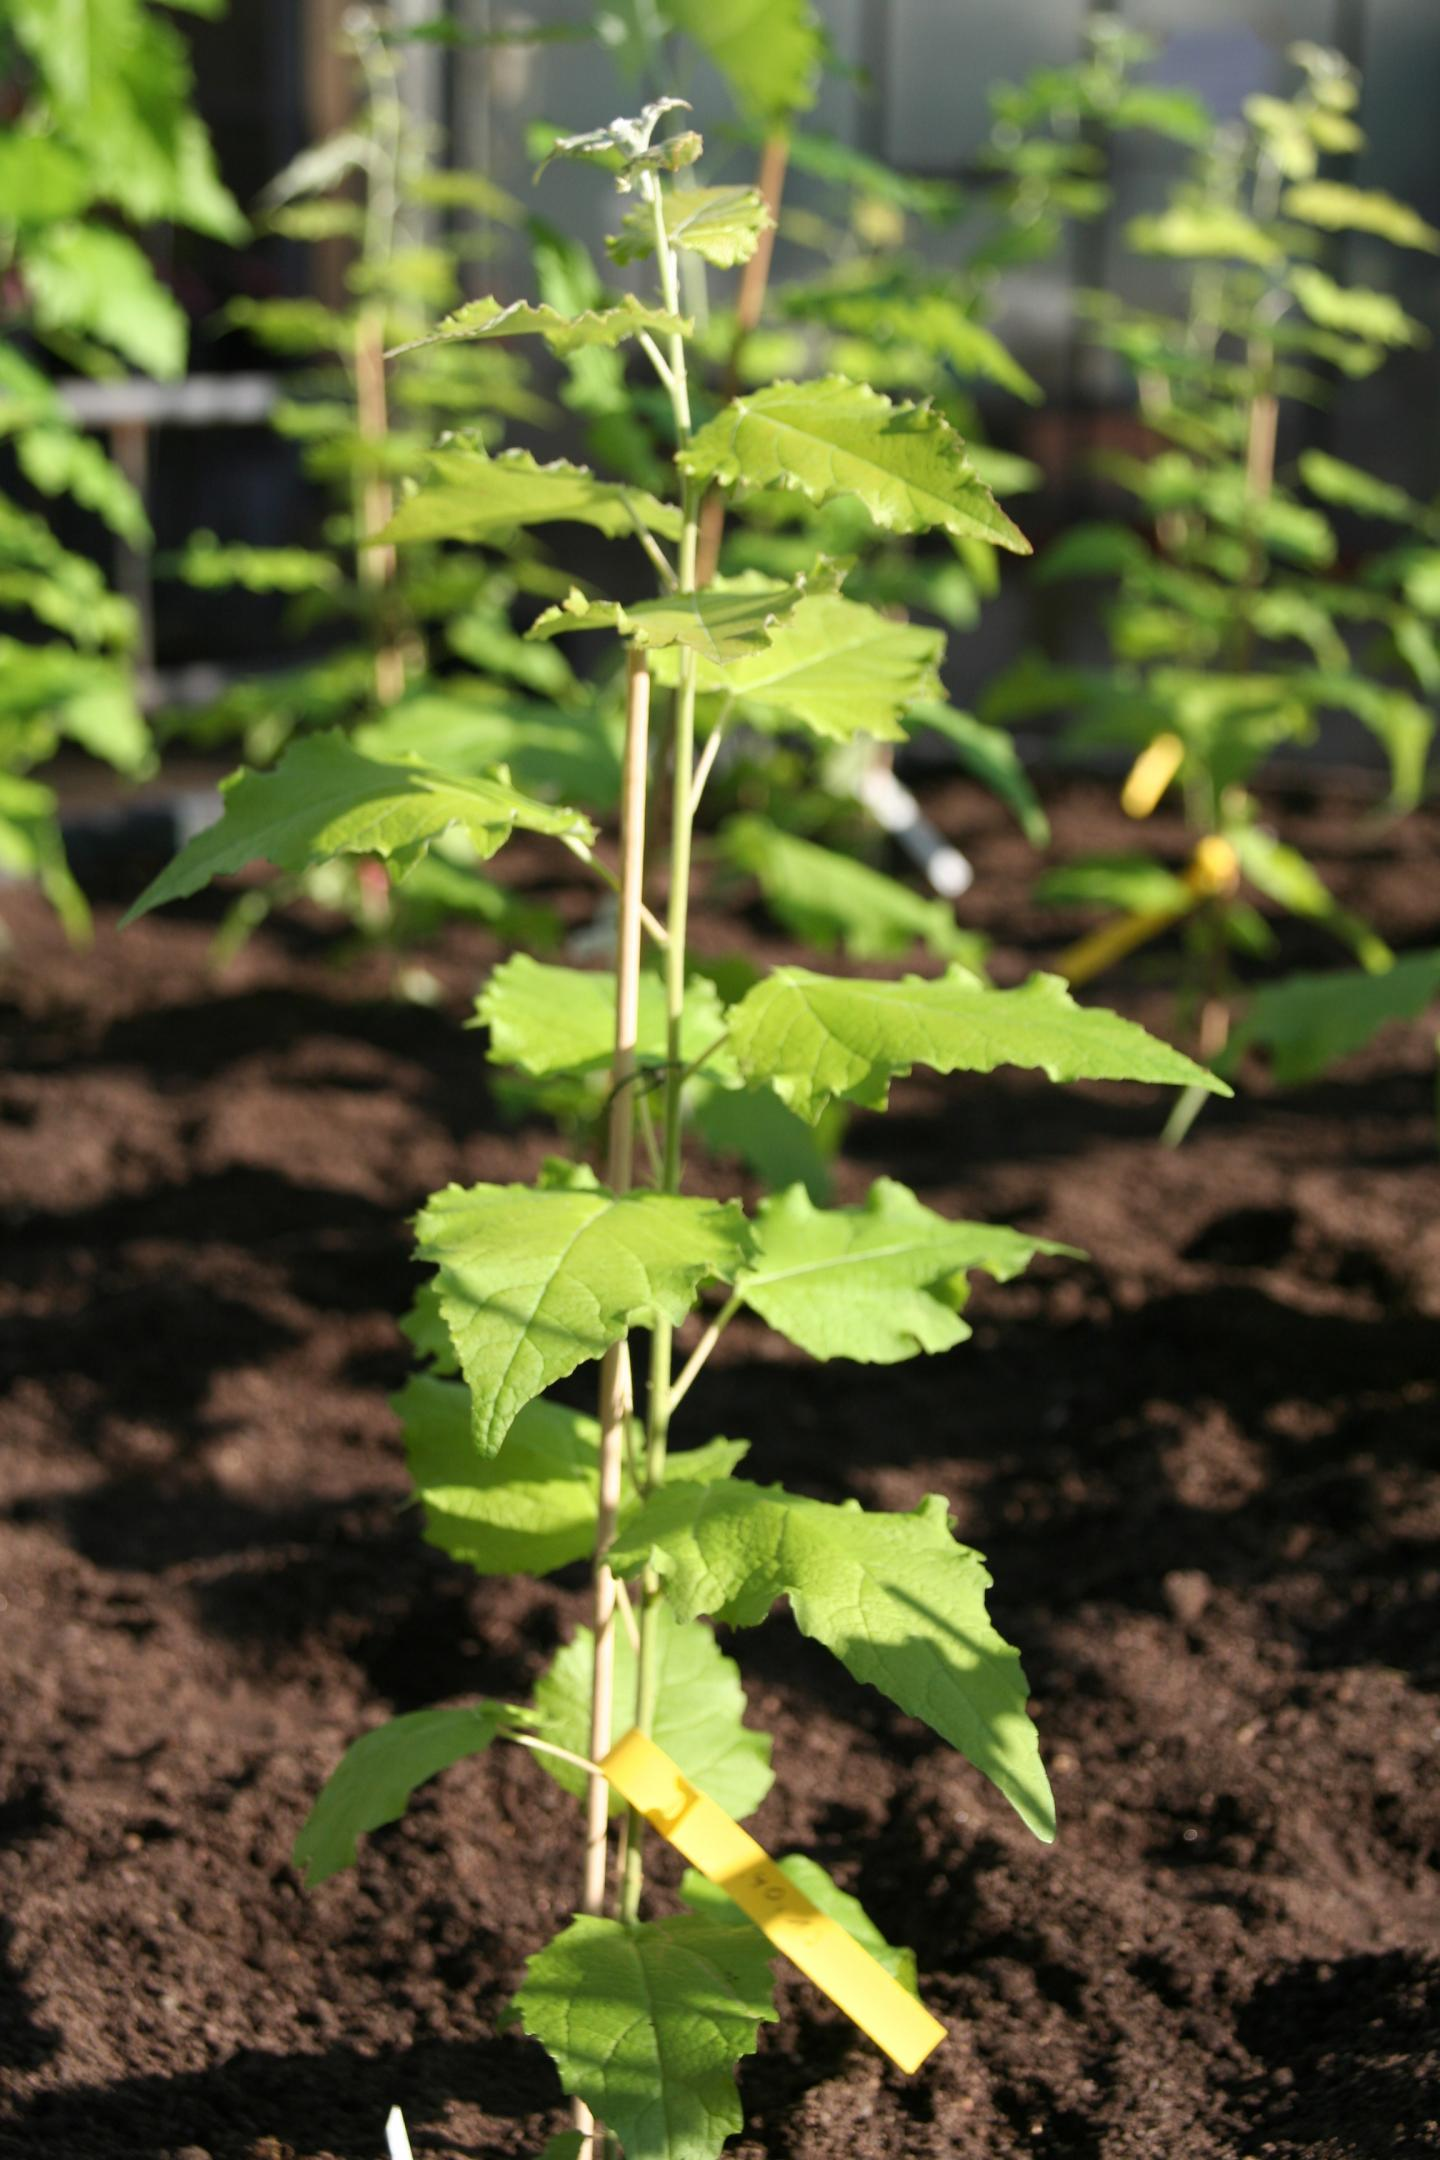 EU Decision Process Hinders Use of Genetically Modified Trees